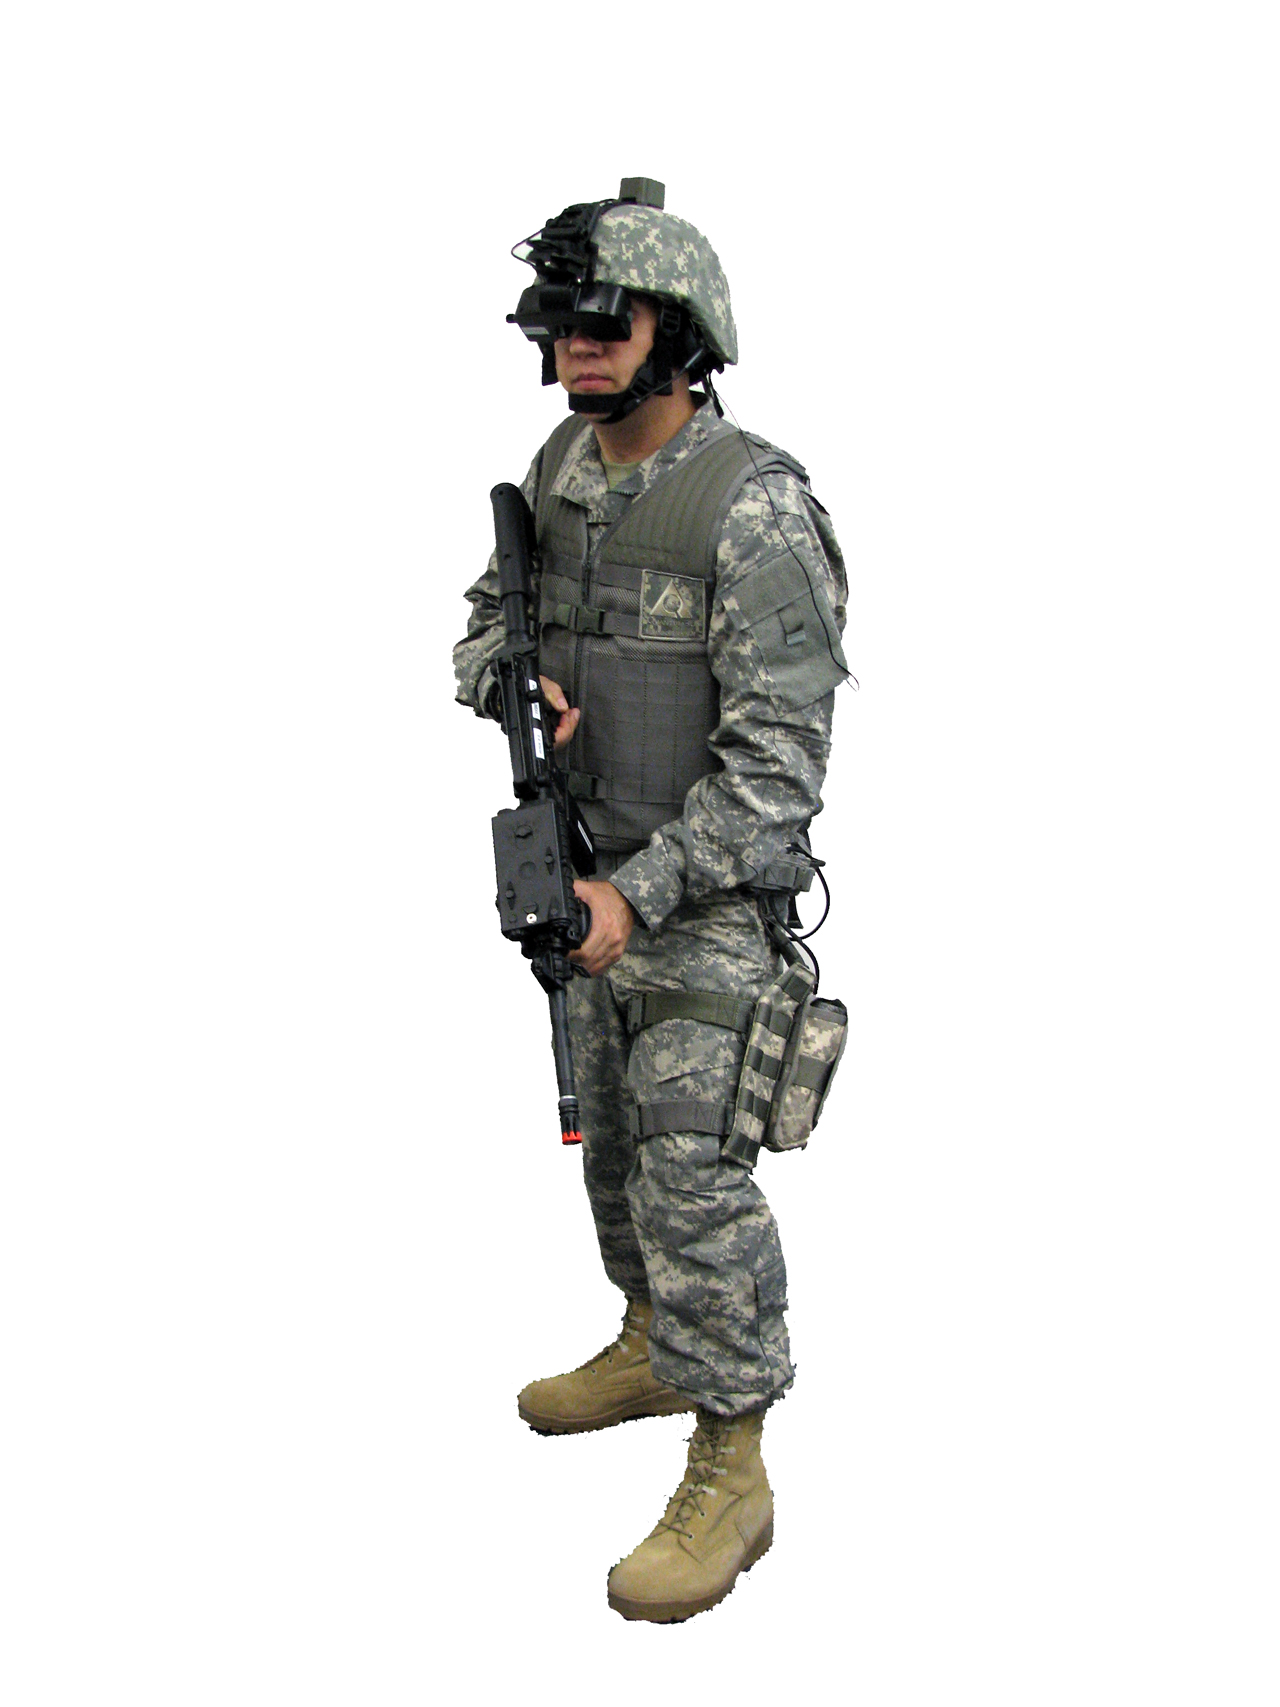 Dismounted Soldier - Gear #1